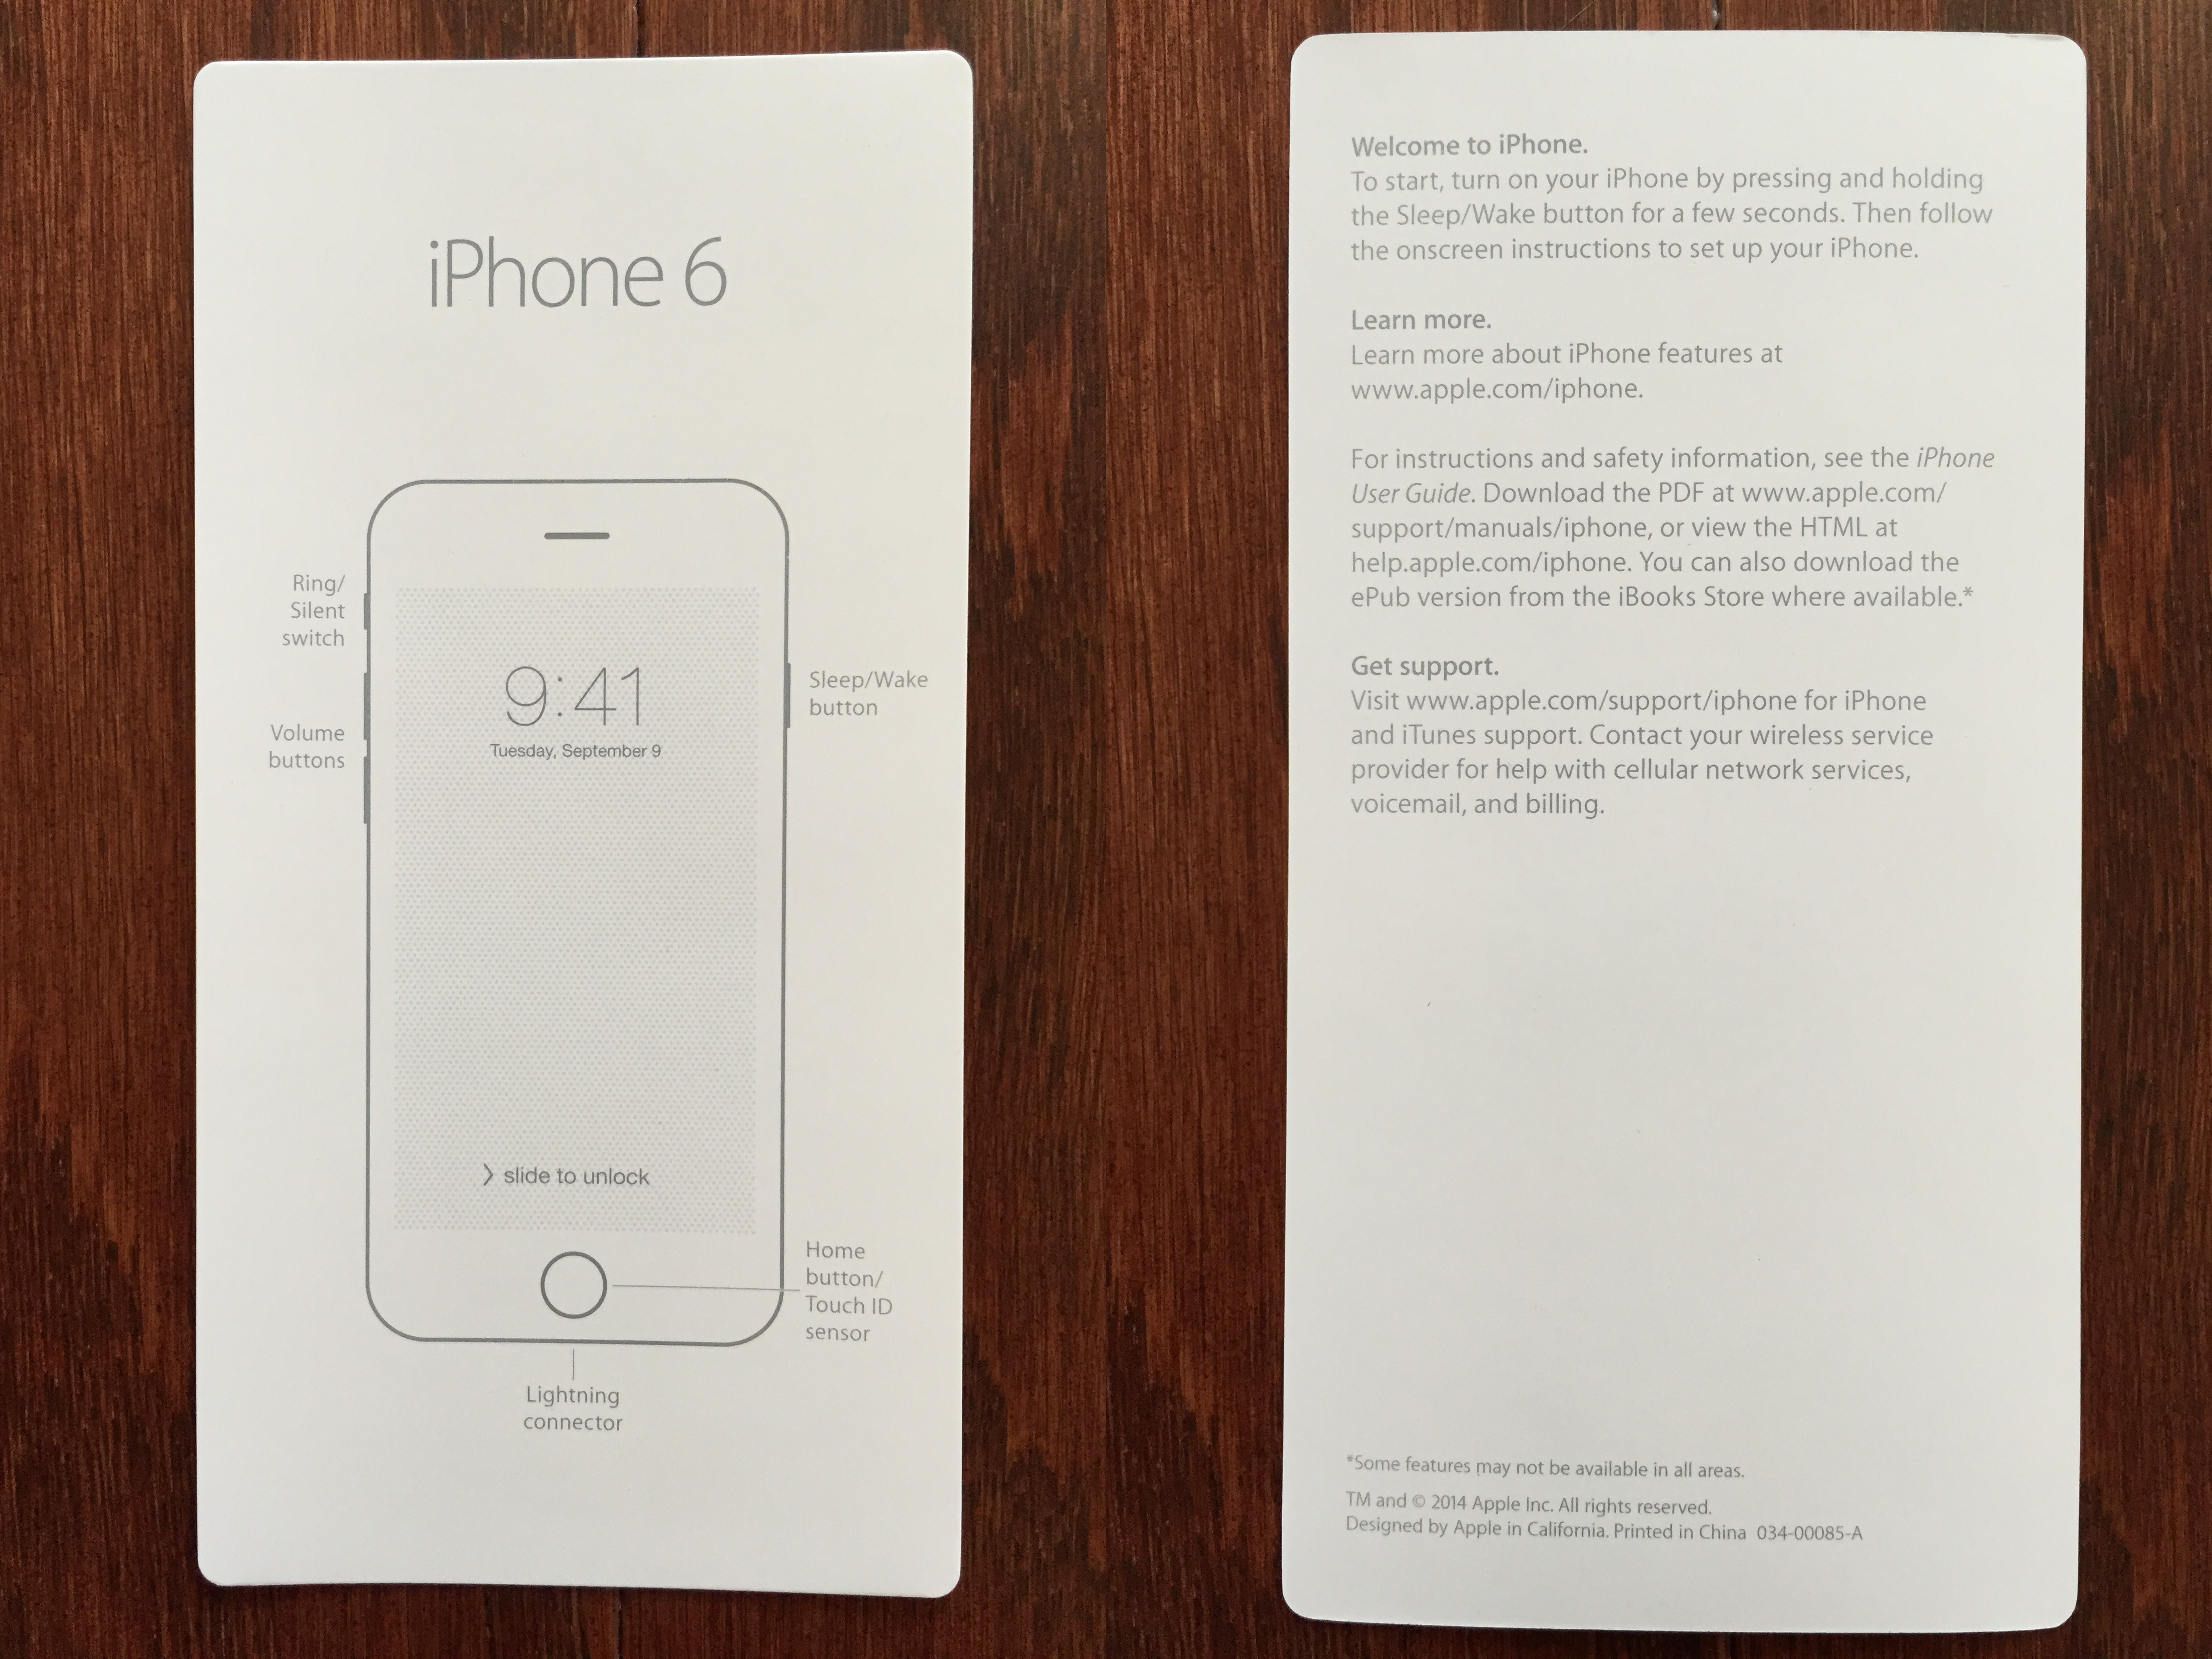 Iphone 6 voicemail volume -  Collage Of Front And Back Of Iphone 6 Info Card With Basic Instructions